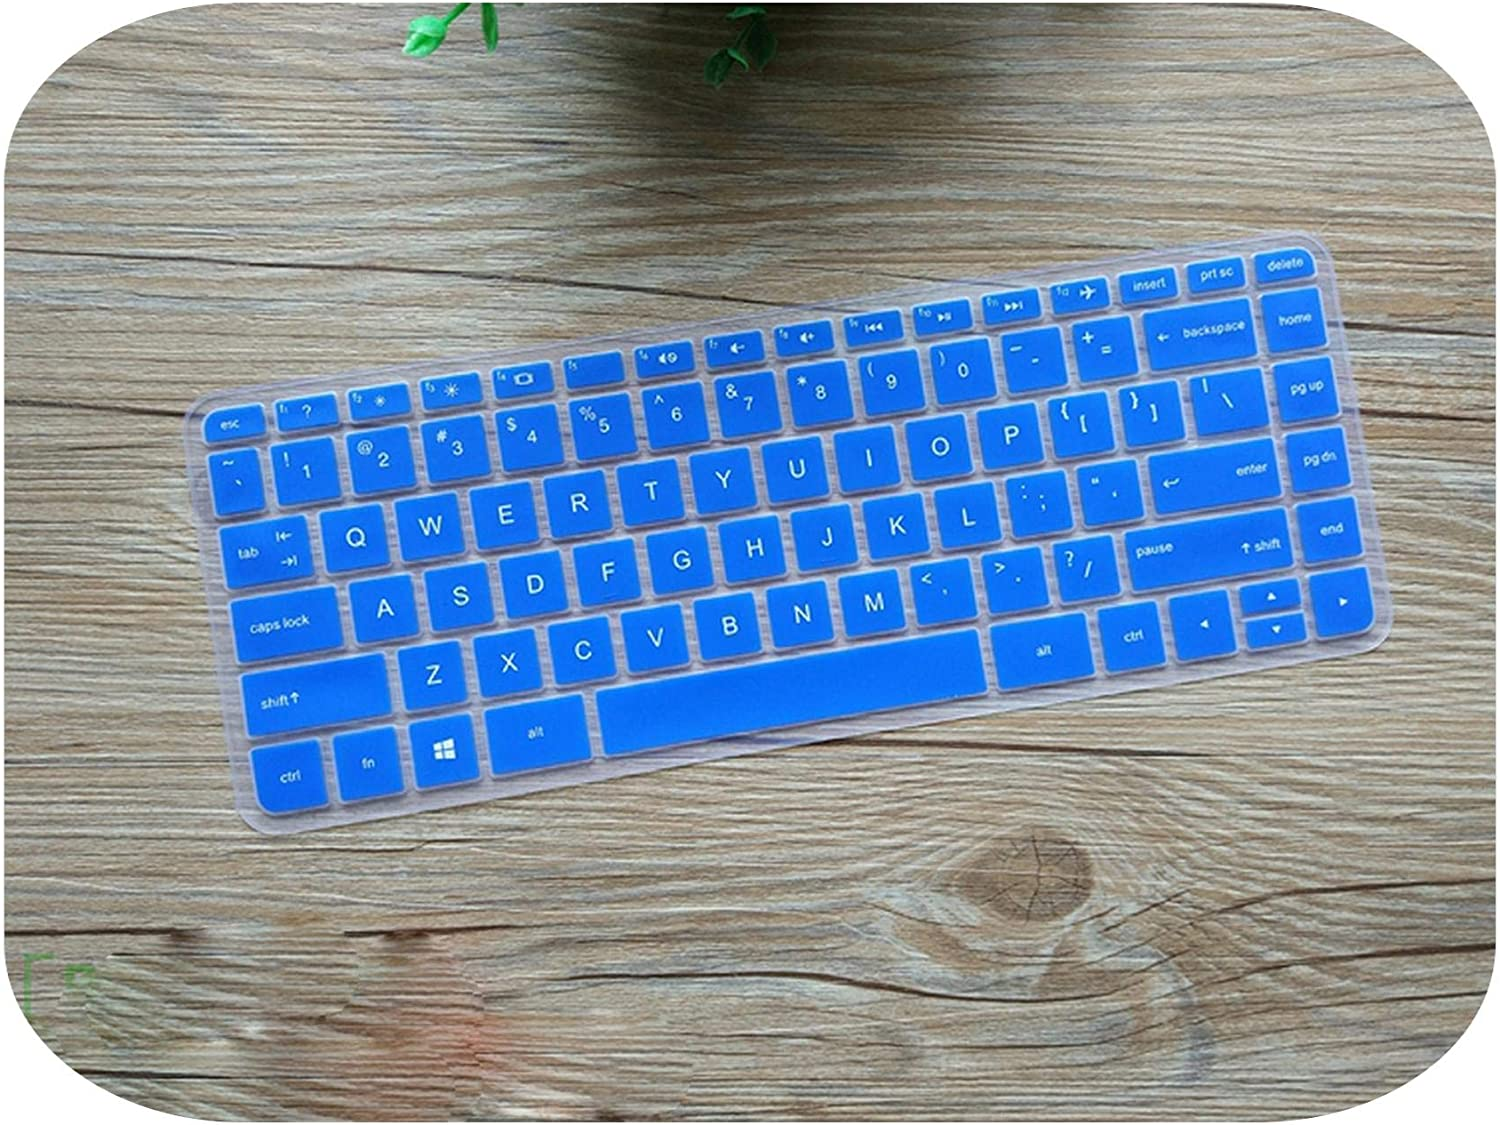 Laptop 14.0 Inch Keyboard Cover Skin Protector for Hp Envy 14 Pavilion 14 X360 13 (2016 Version) 14-U204Tx Envy 14-J104Tx-Blue-